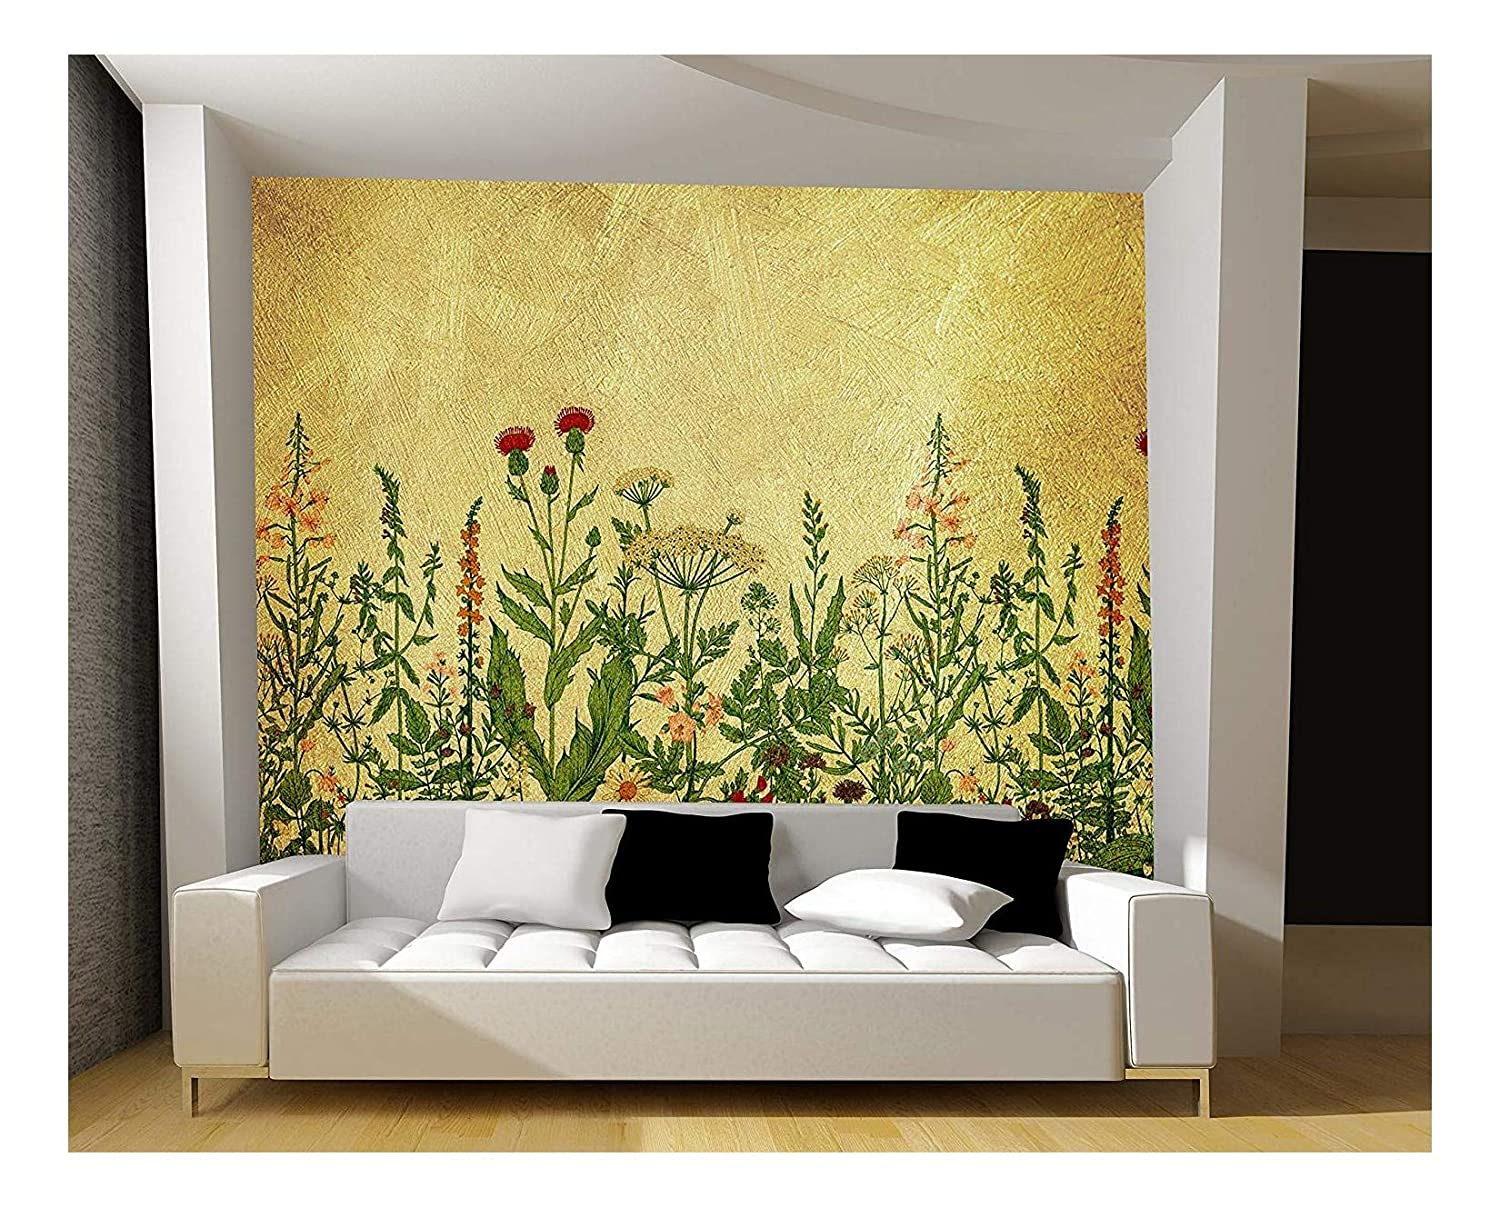 Large Wall Mural Various Flowers on Golden Textured Background Vinyl ...